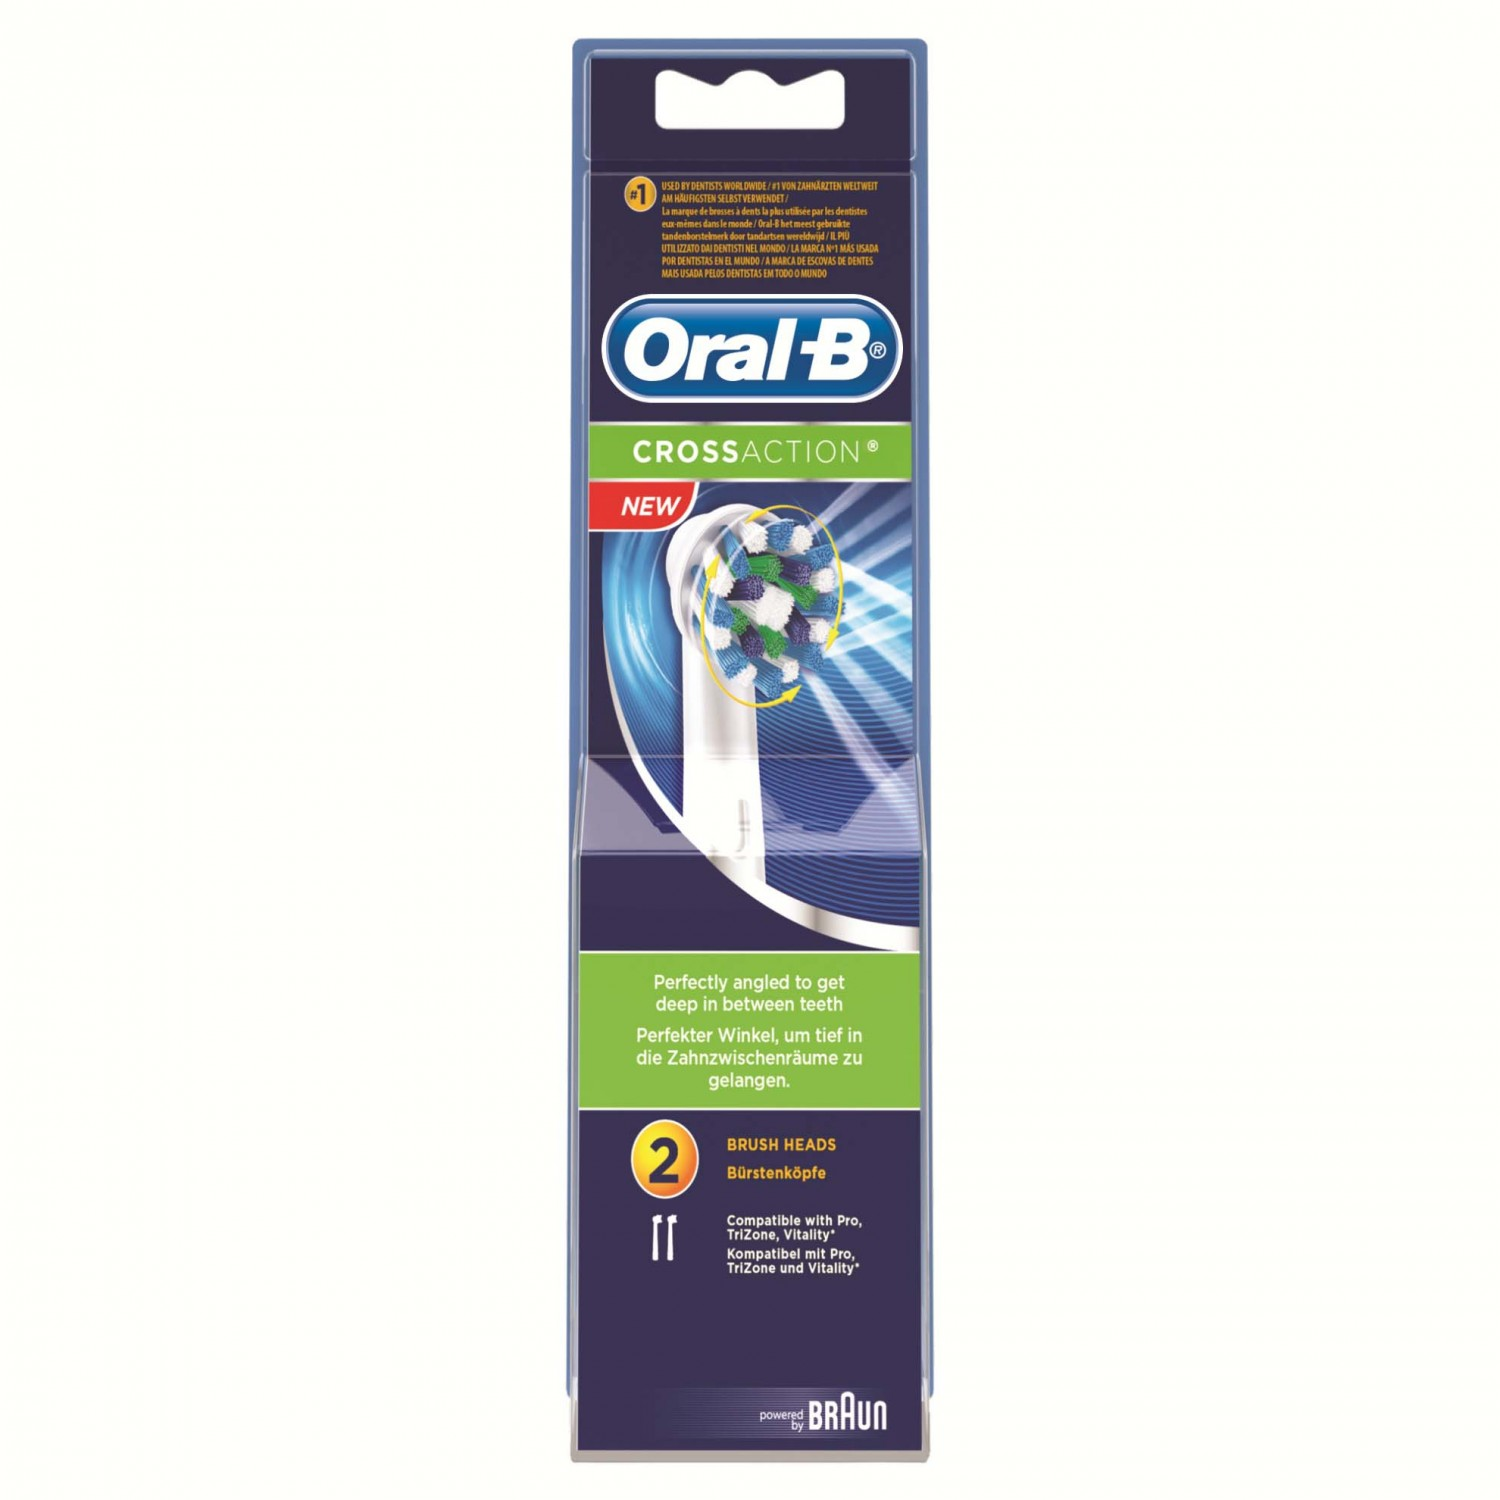 Oral B recambio cepillo dental electrico cross action por 2 unidades